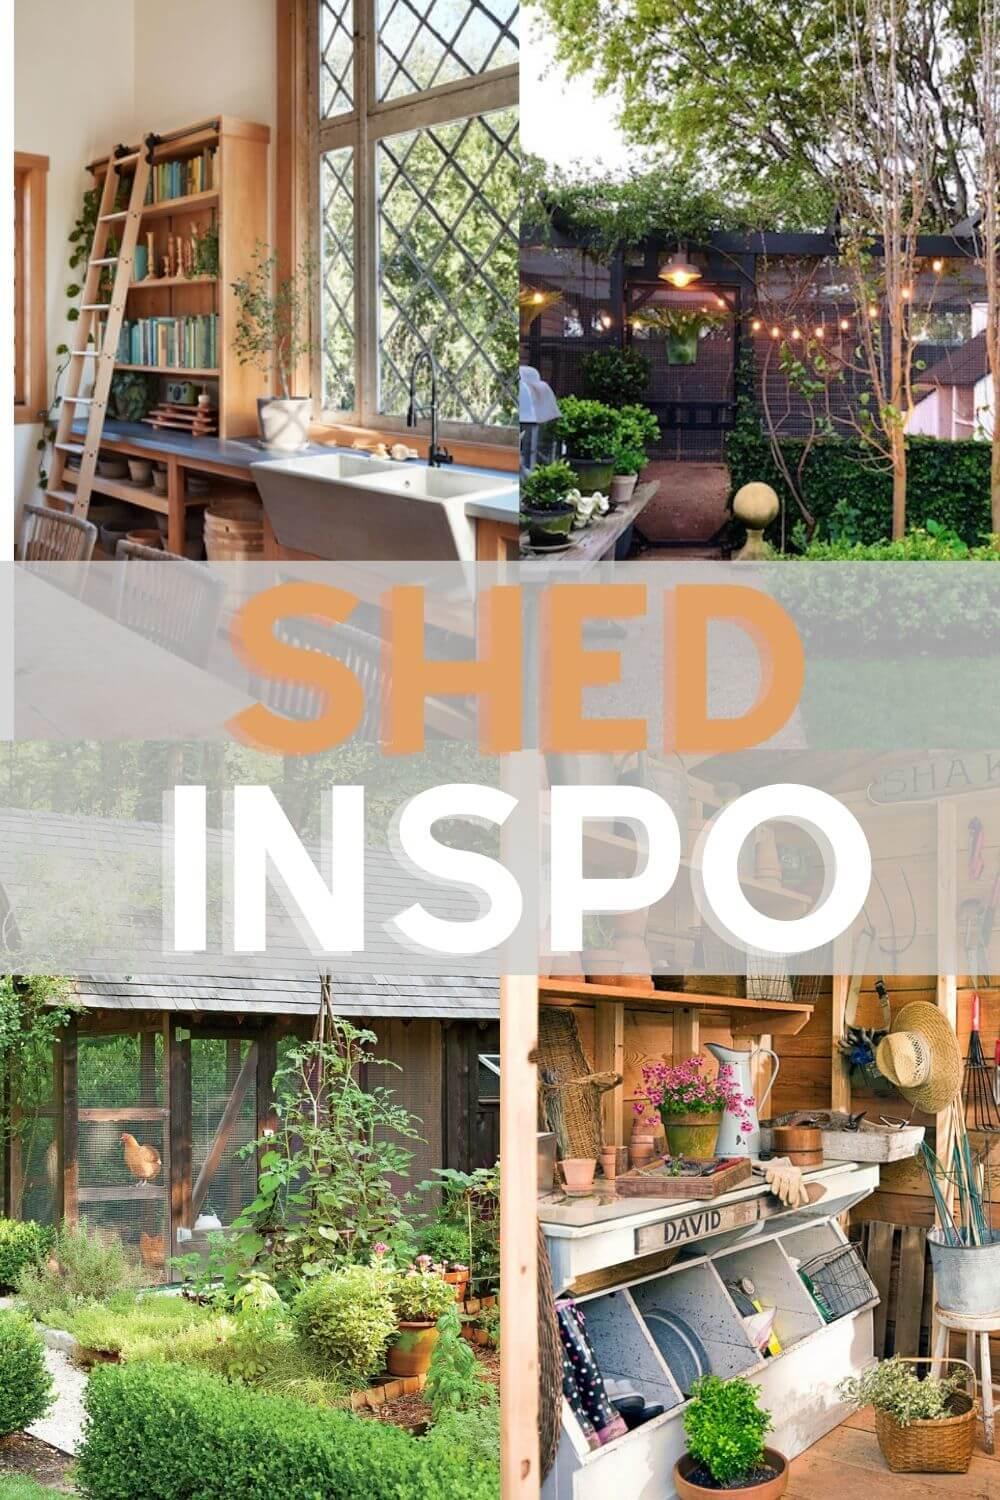 Welcome Home Saturday: Shed Inspo